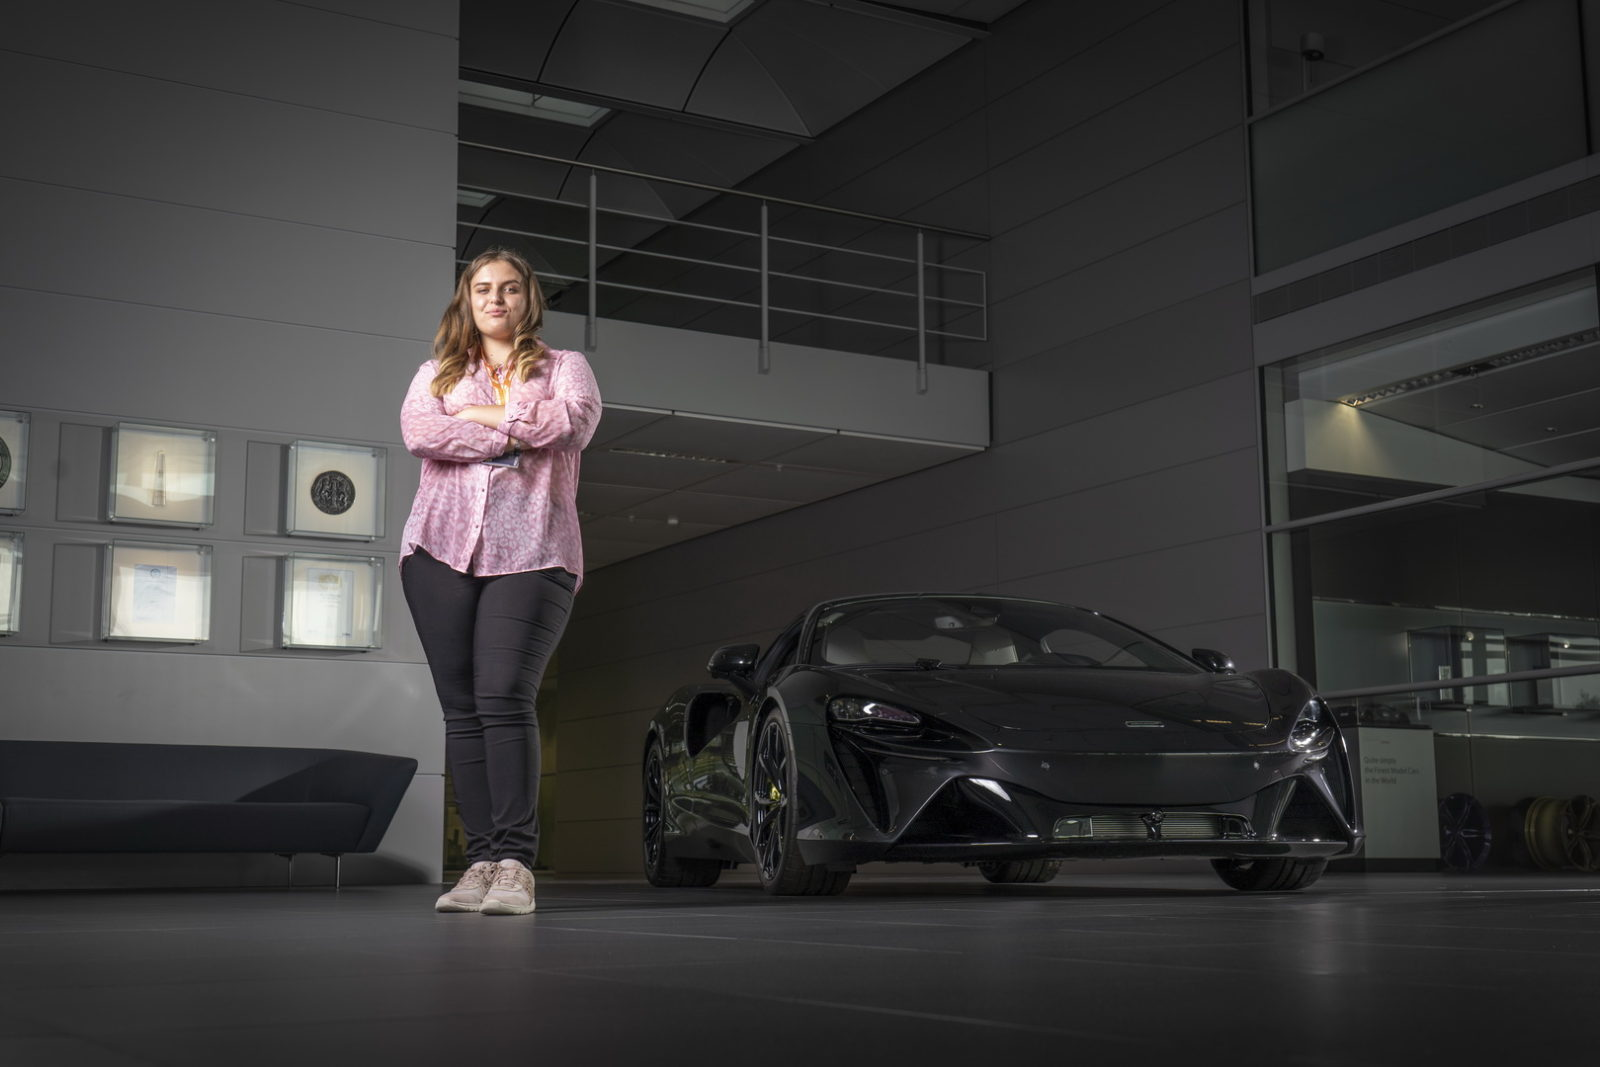 17-year-old-girl-from-wales-becomes-mclaren-ceo-for-a-day